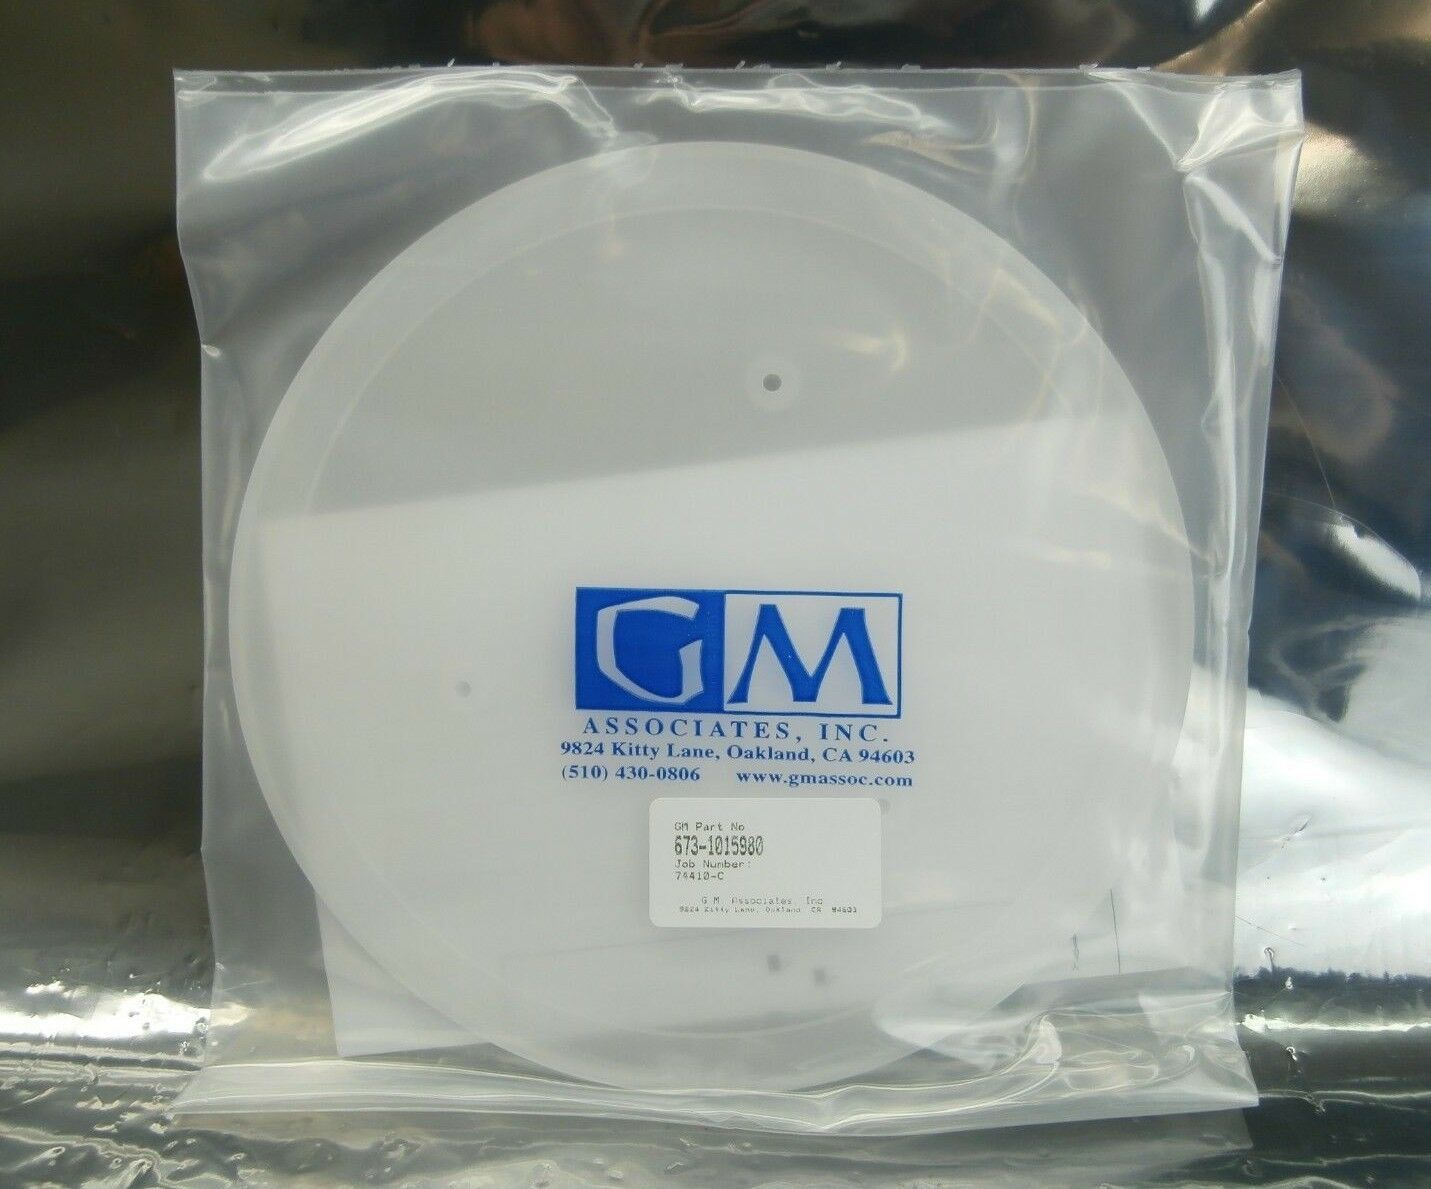 GM Associates 673-1015980 Pedestal Nest 40D C'BORE 1015980-07 GMA347-0011 New